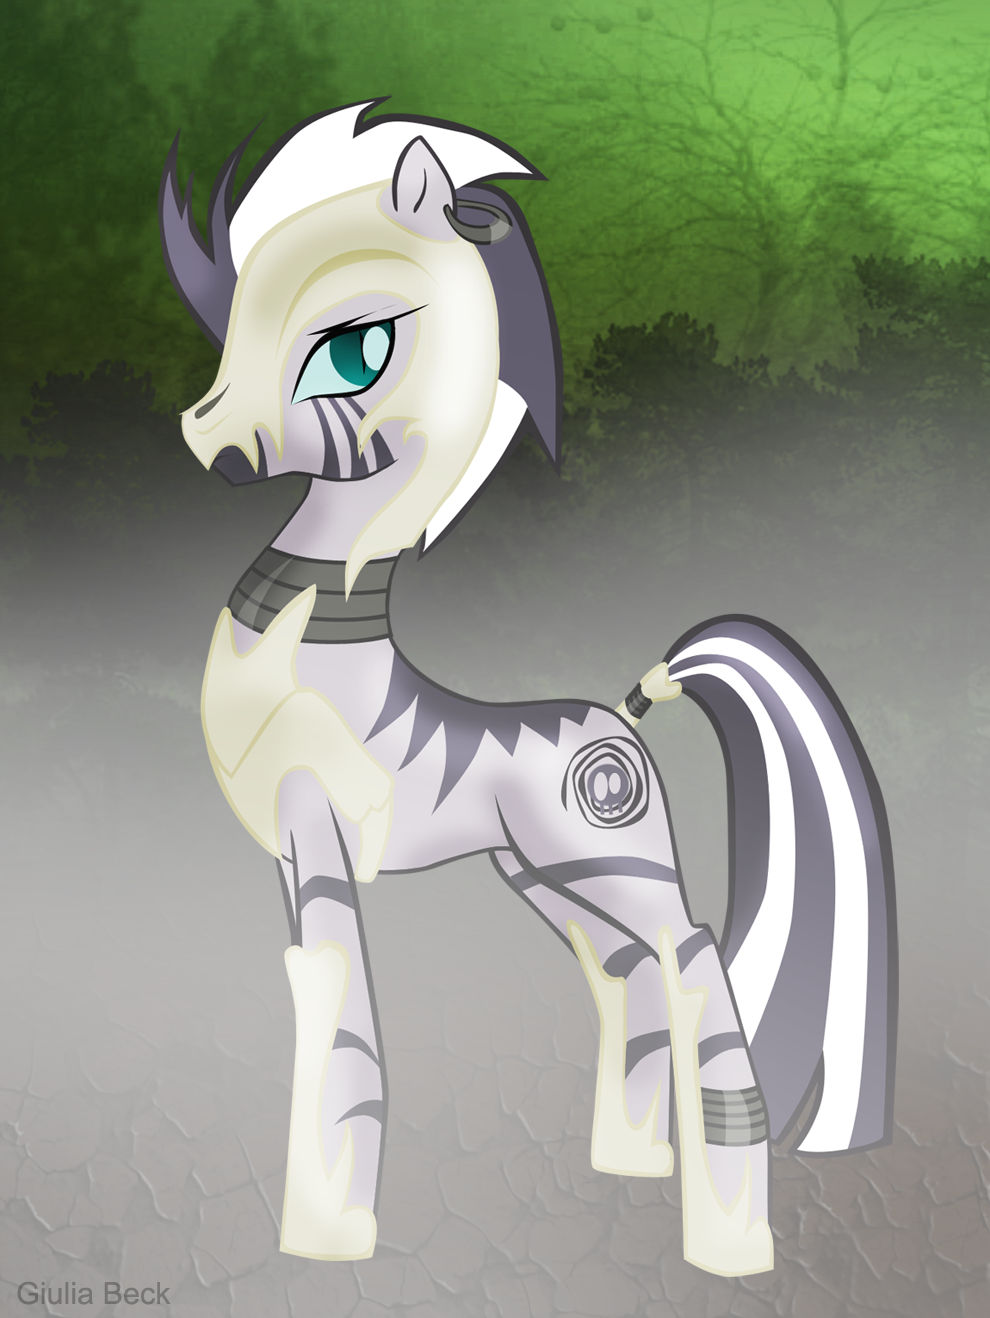 nightmare_zecora_by_giuliabeck-d4p59rk.png